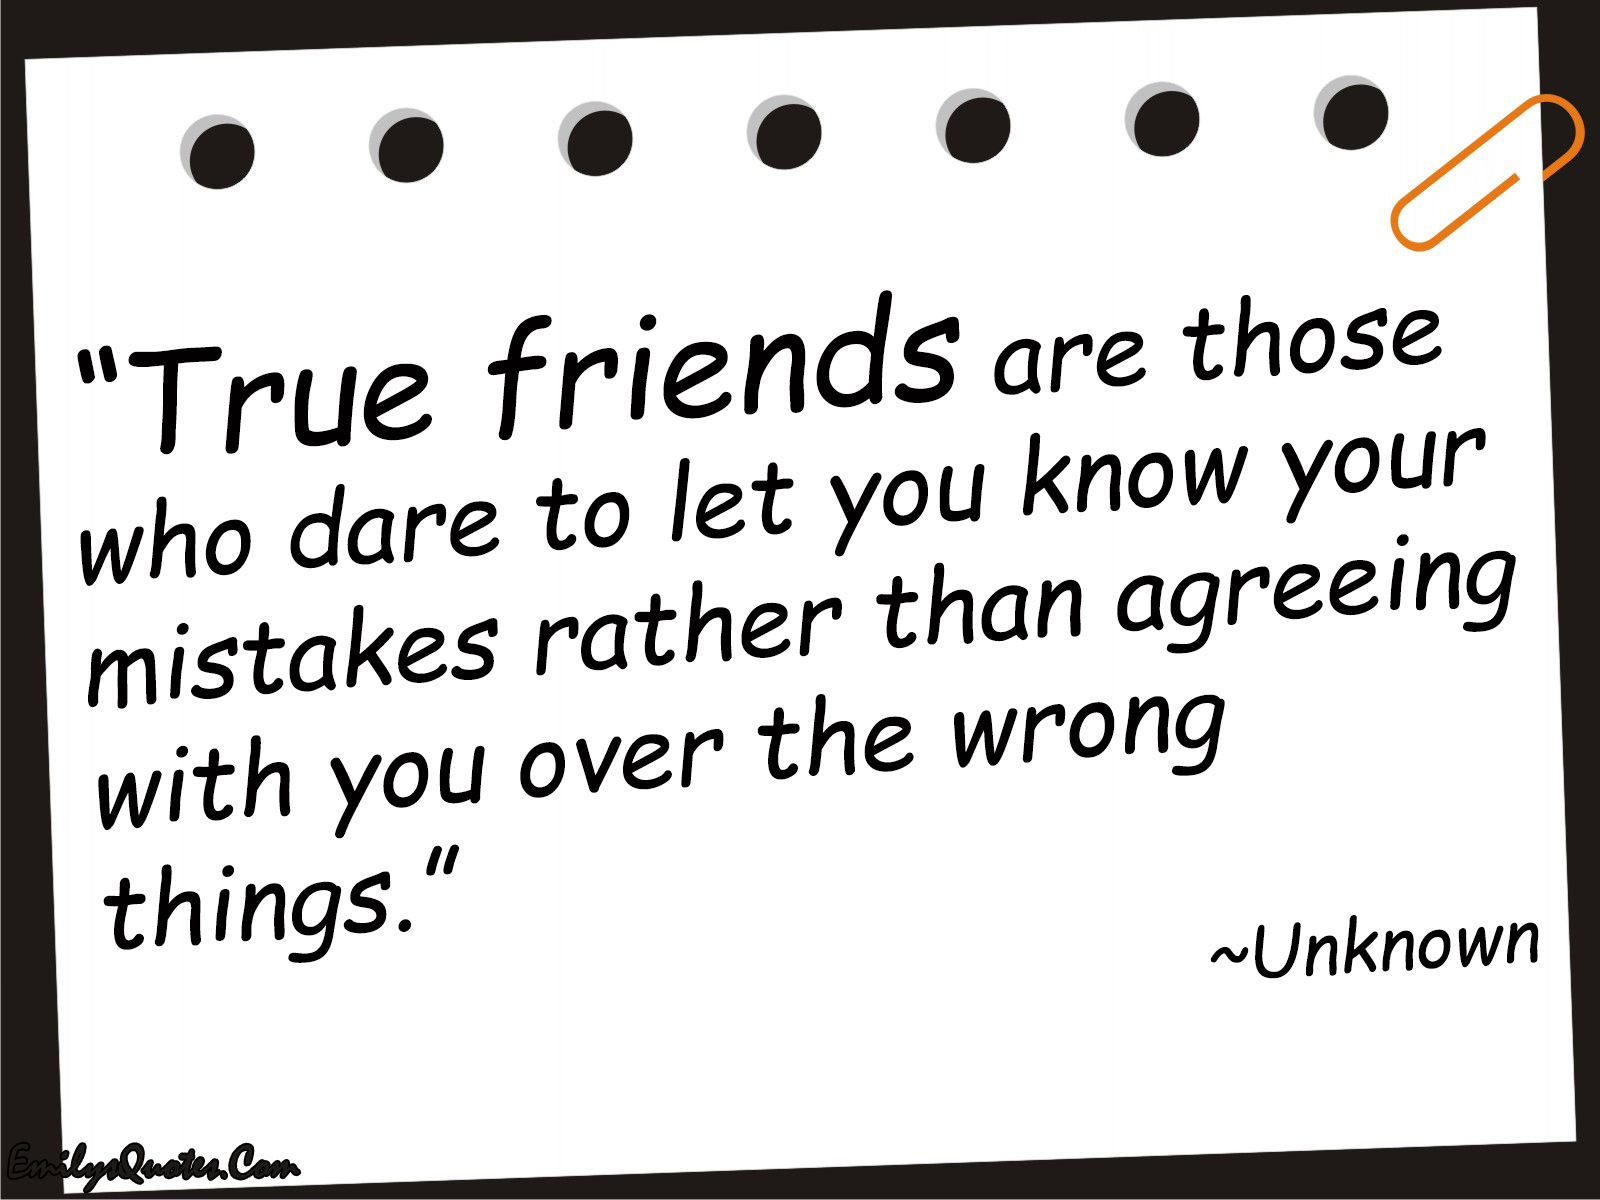 True friends are those who dare to let you know your mistakes